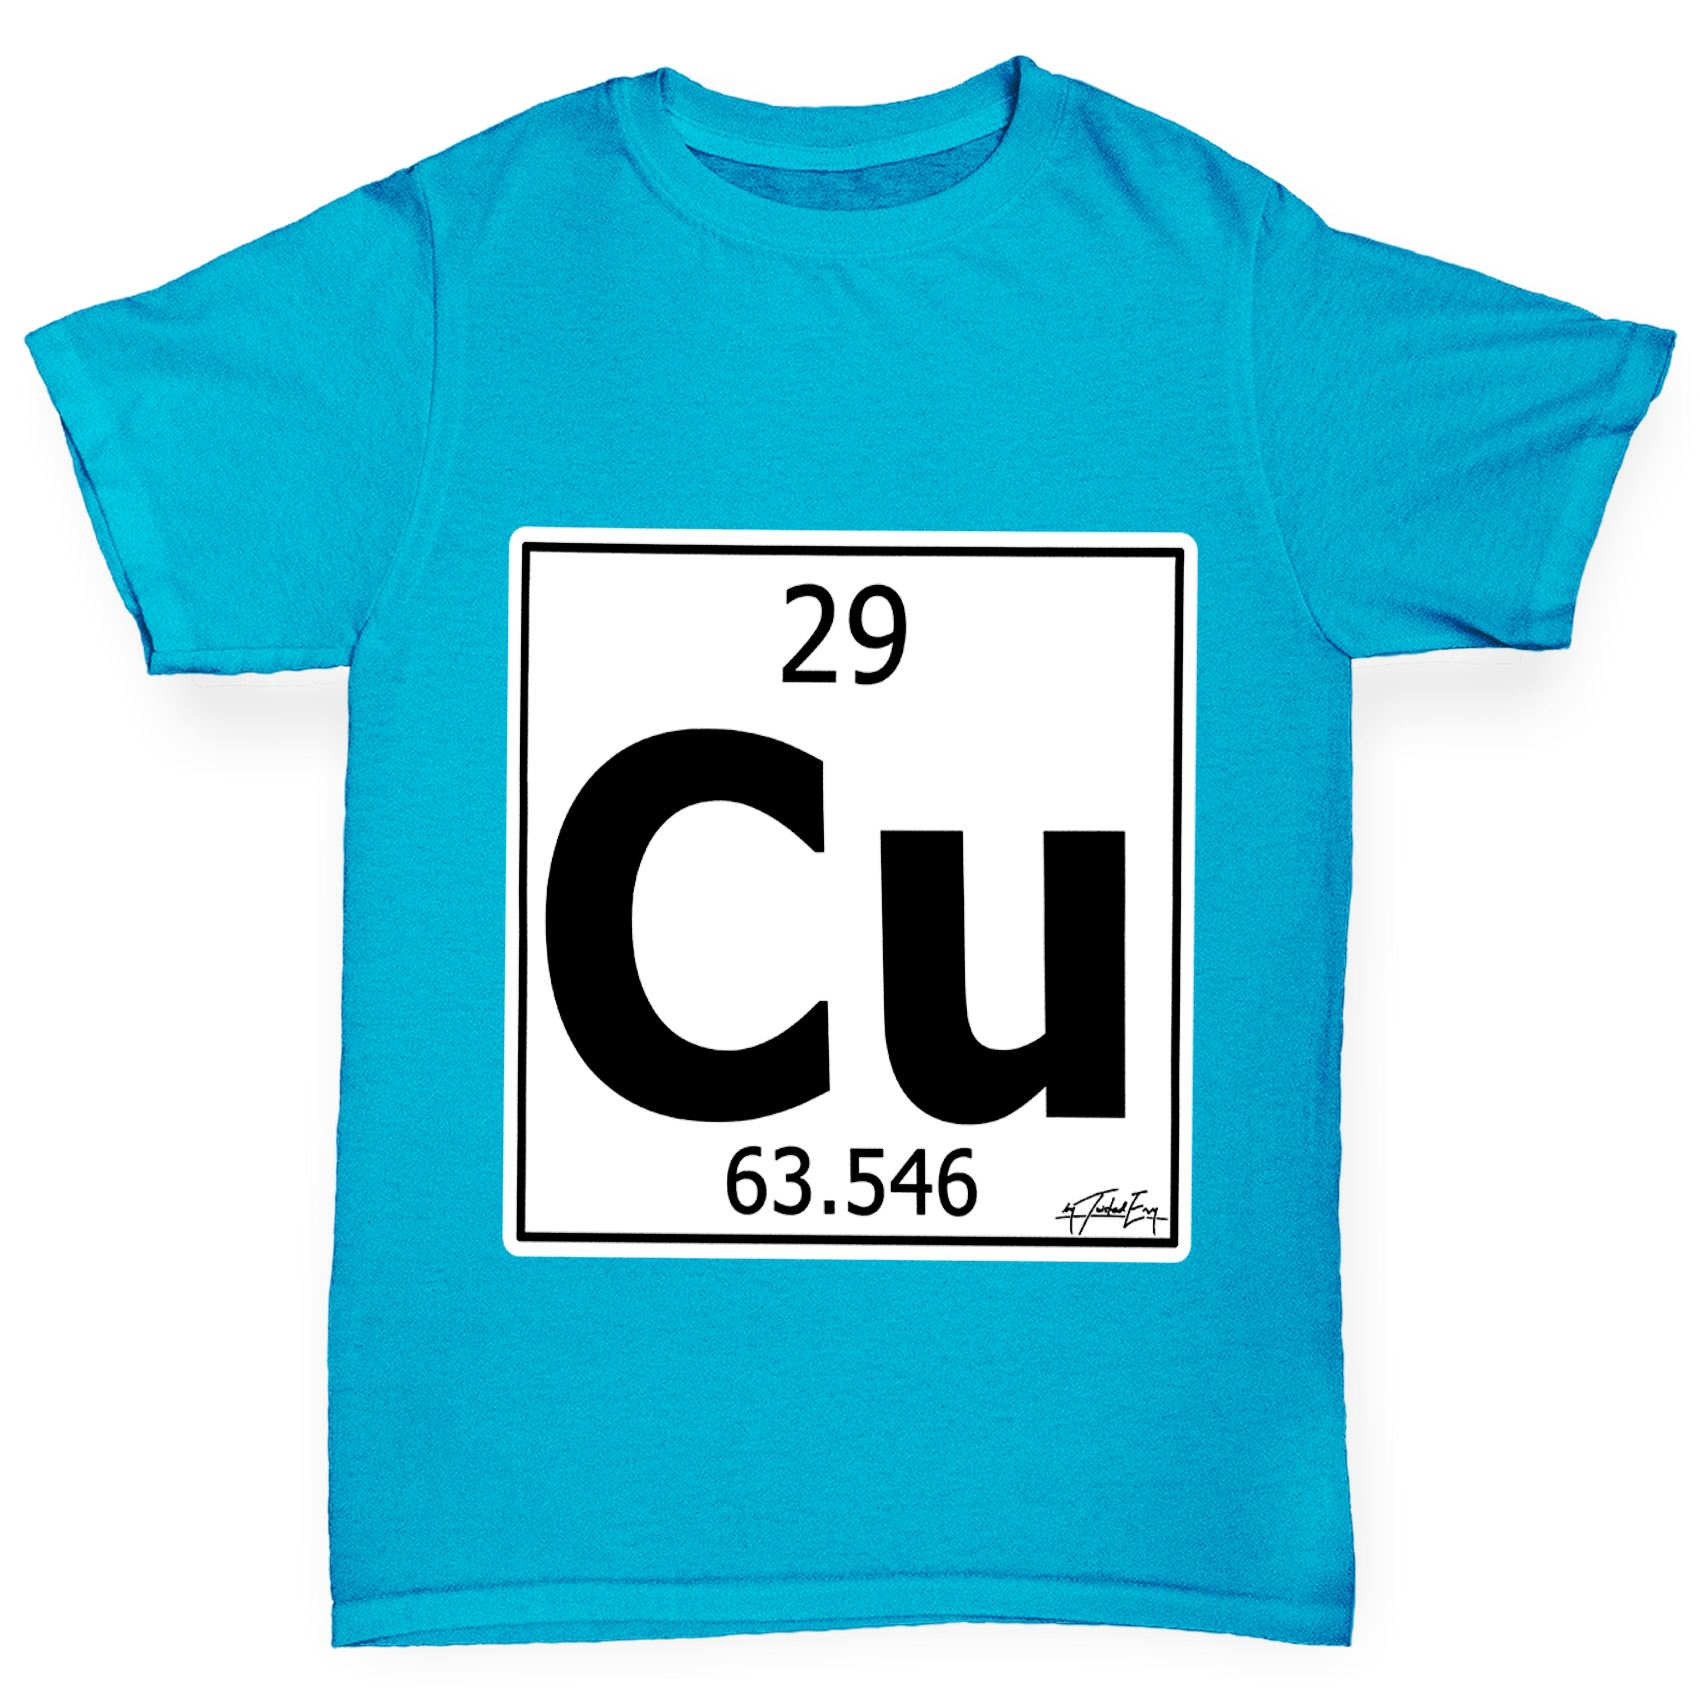 Element cu periodic table choice image periodic table images twisted envy boys periodic table element cu copper t shirt ebay twisted envy boy 039 s gamestrikefo Gallery